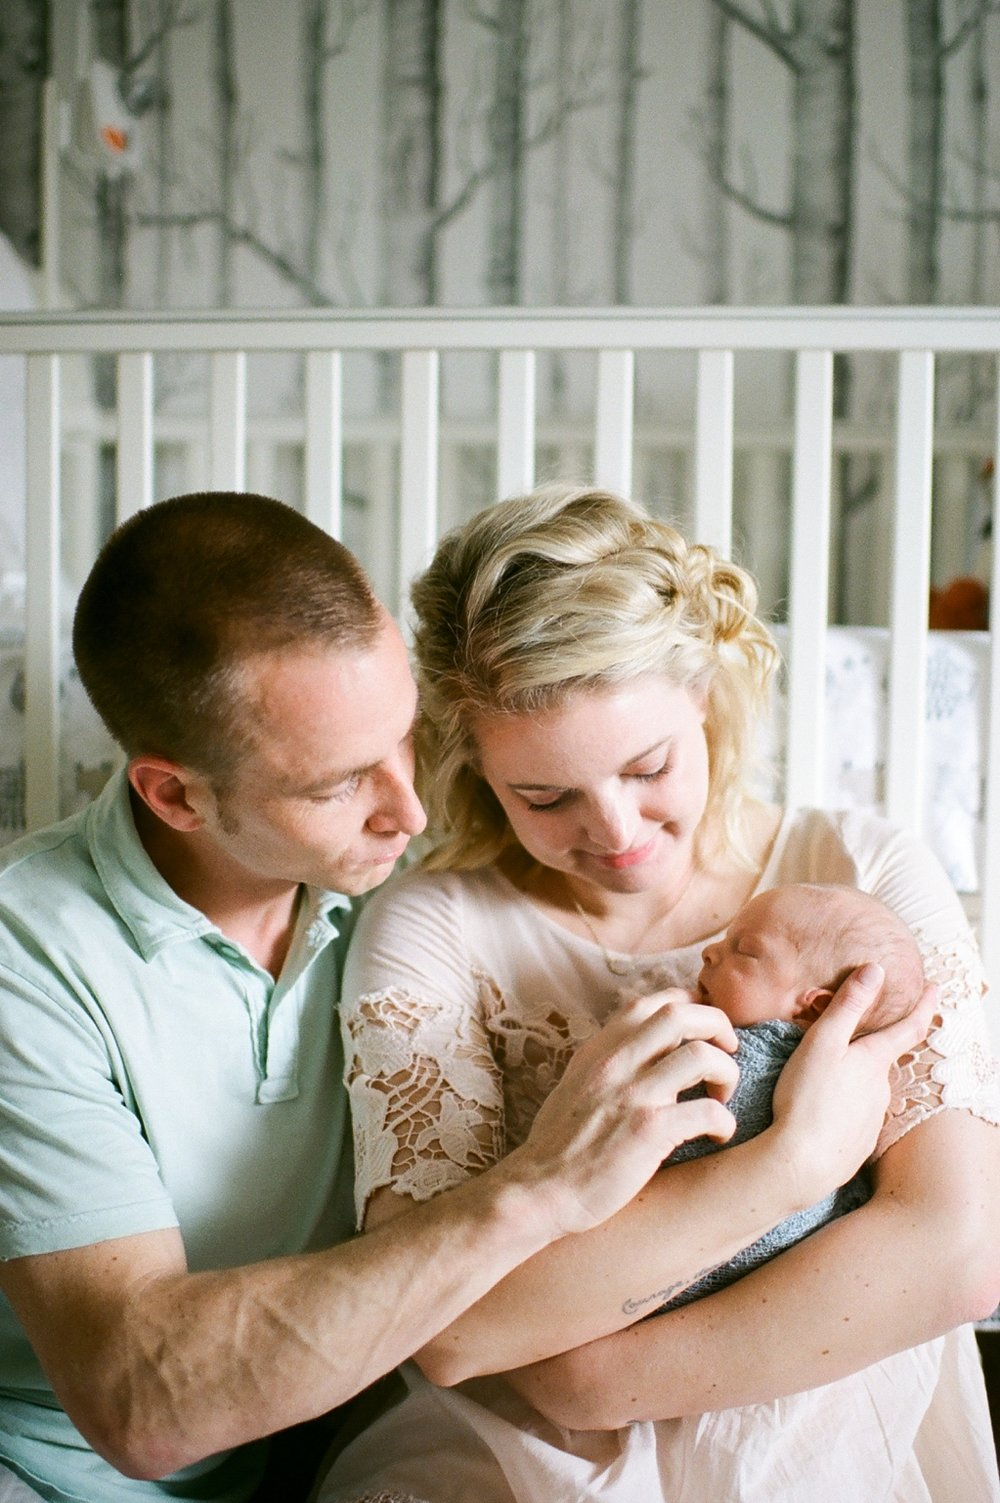 virginia_newborn_lifestyle_photography_fine_art_film_0014.jpg